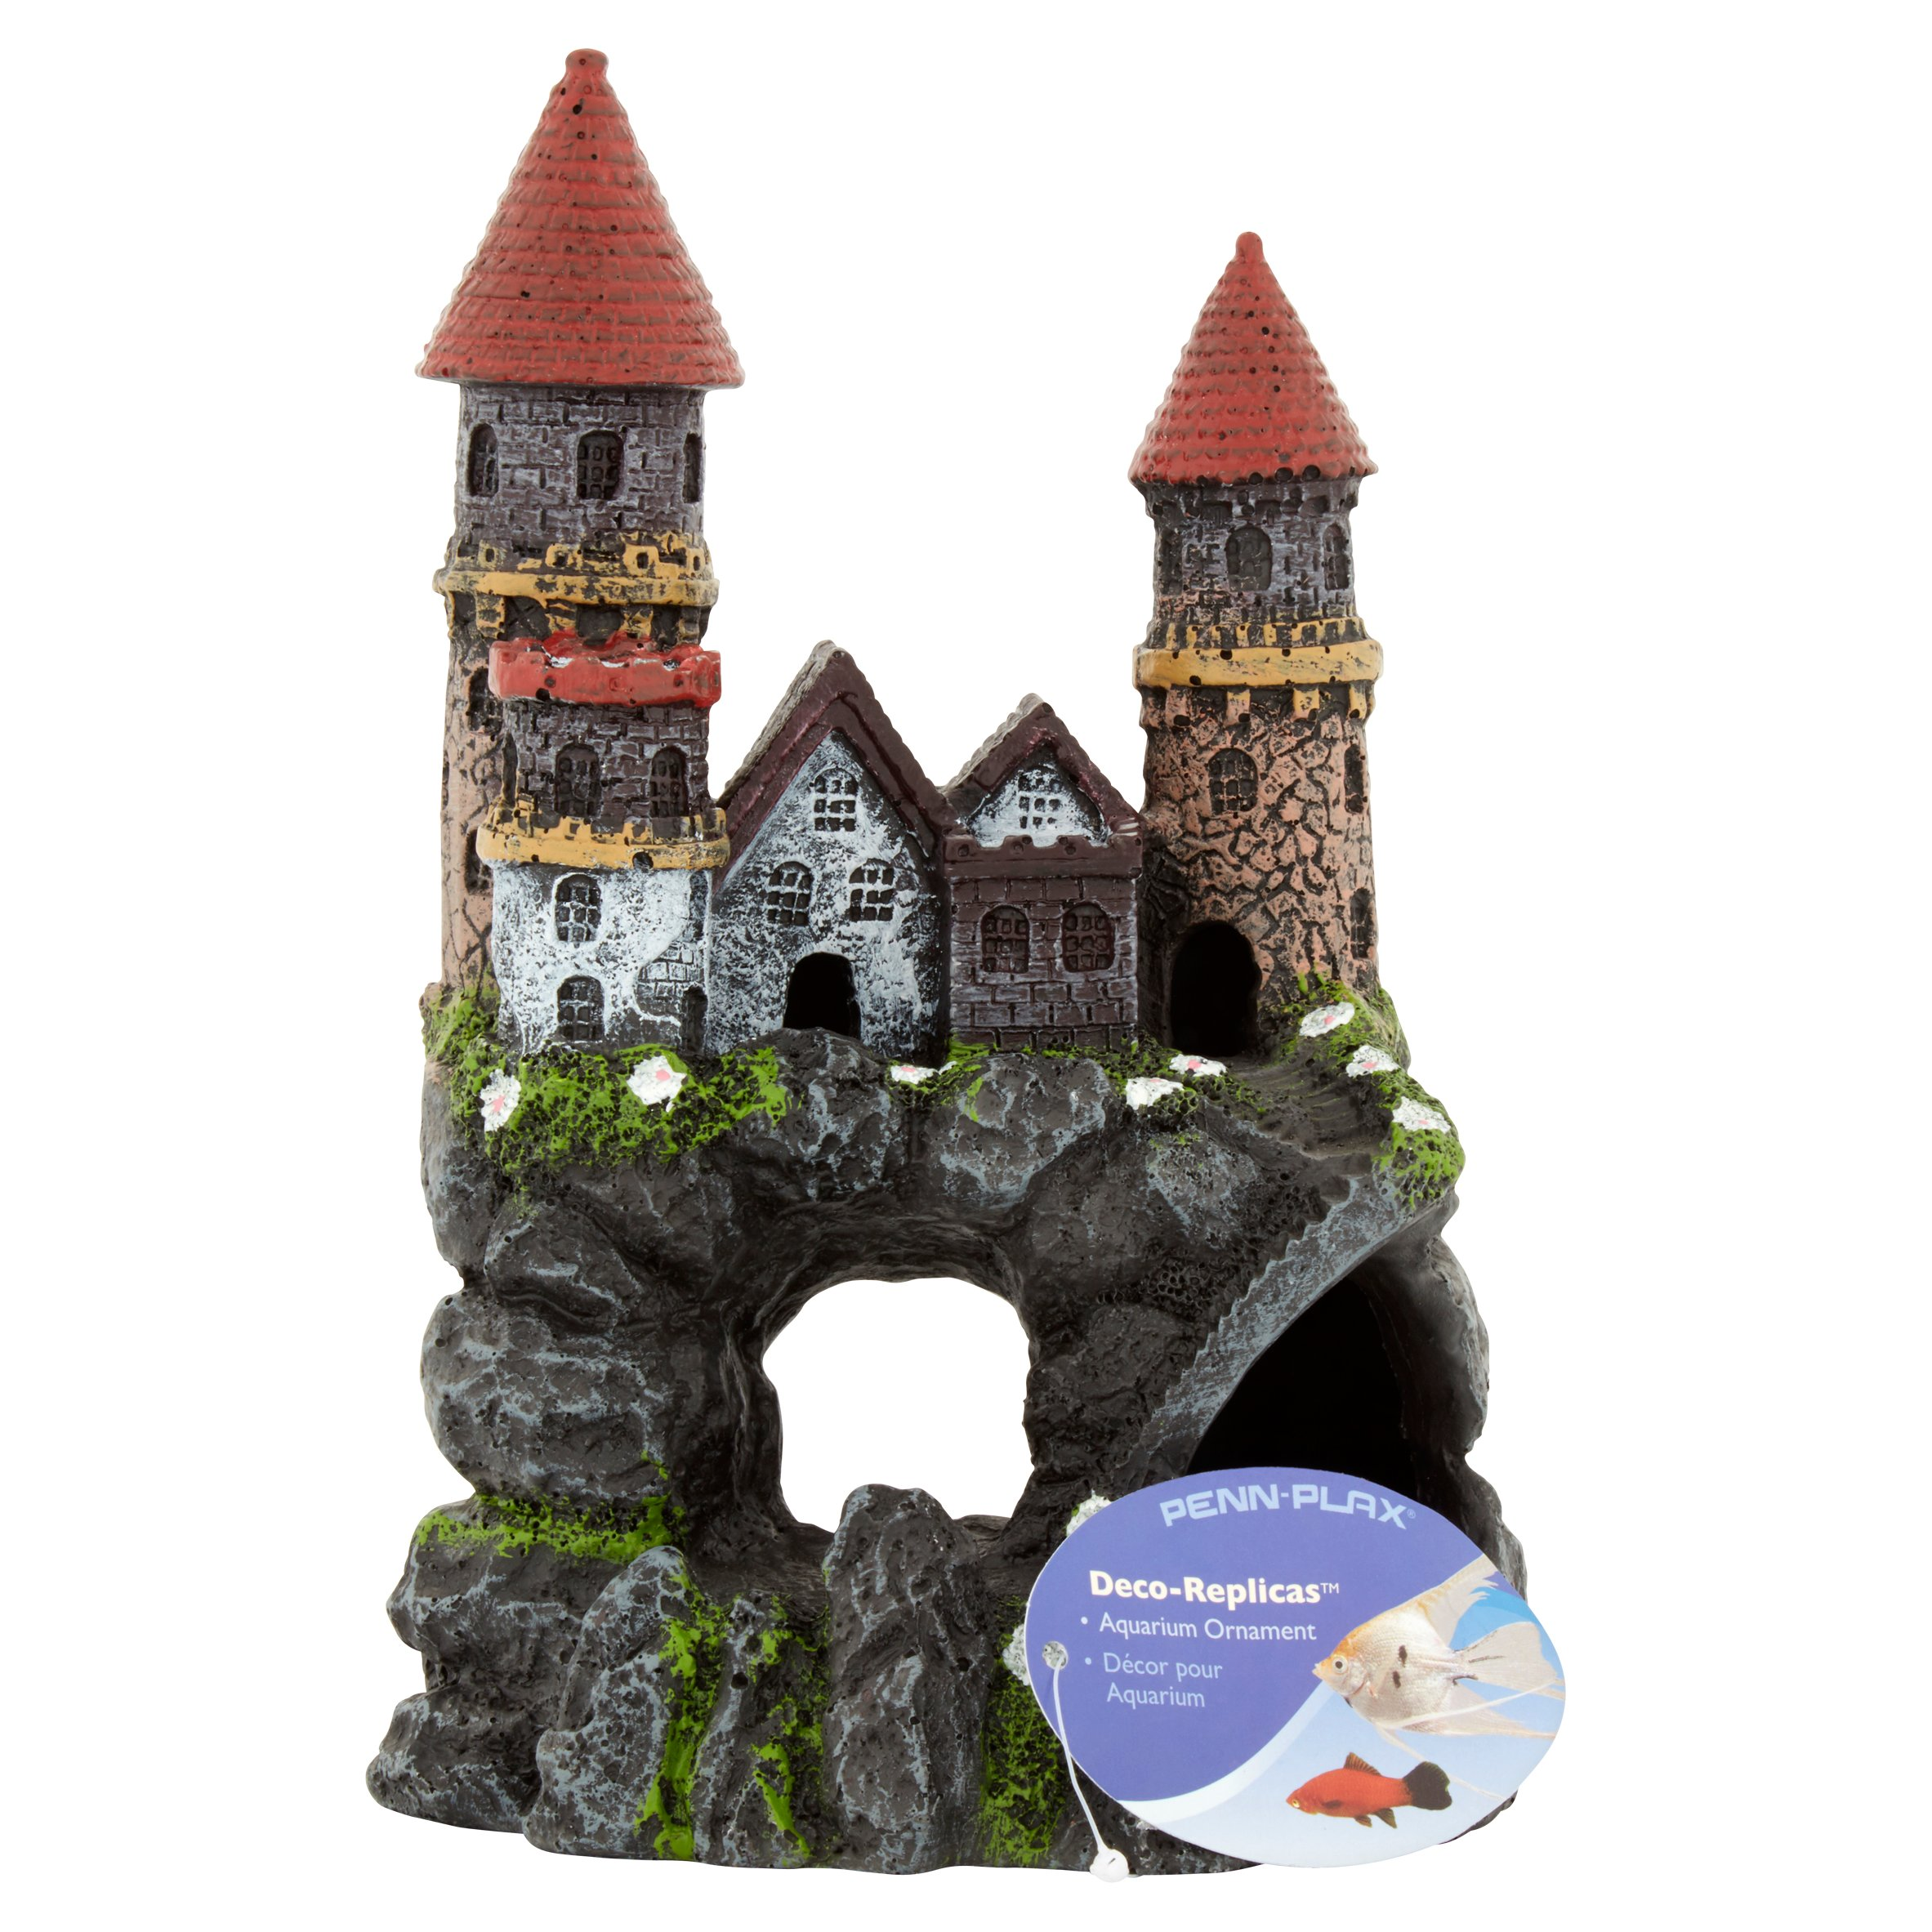 Penn-Plax Deco-Replicas Enchanted Castle-Medium Aquarium Ornament